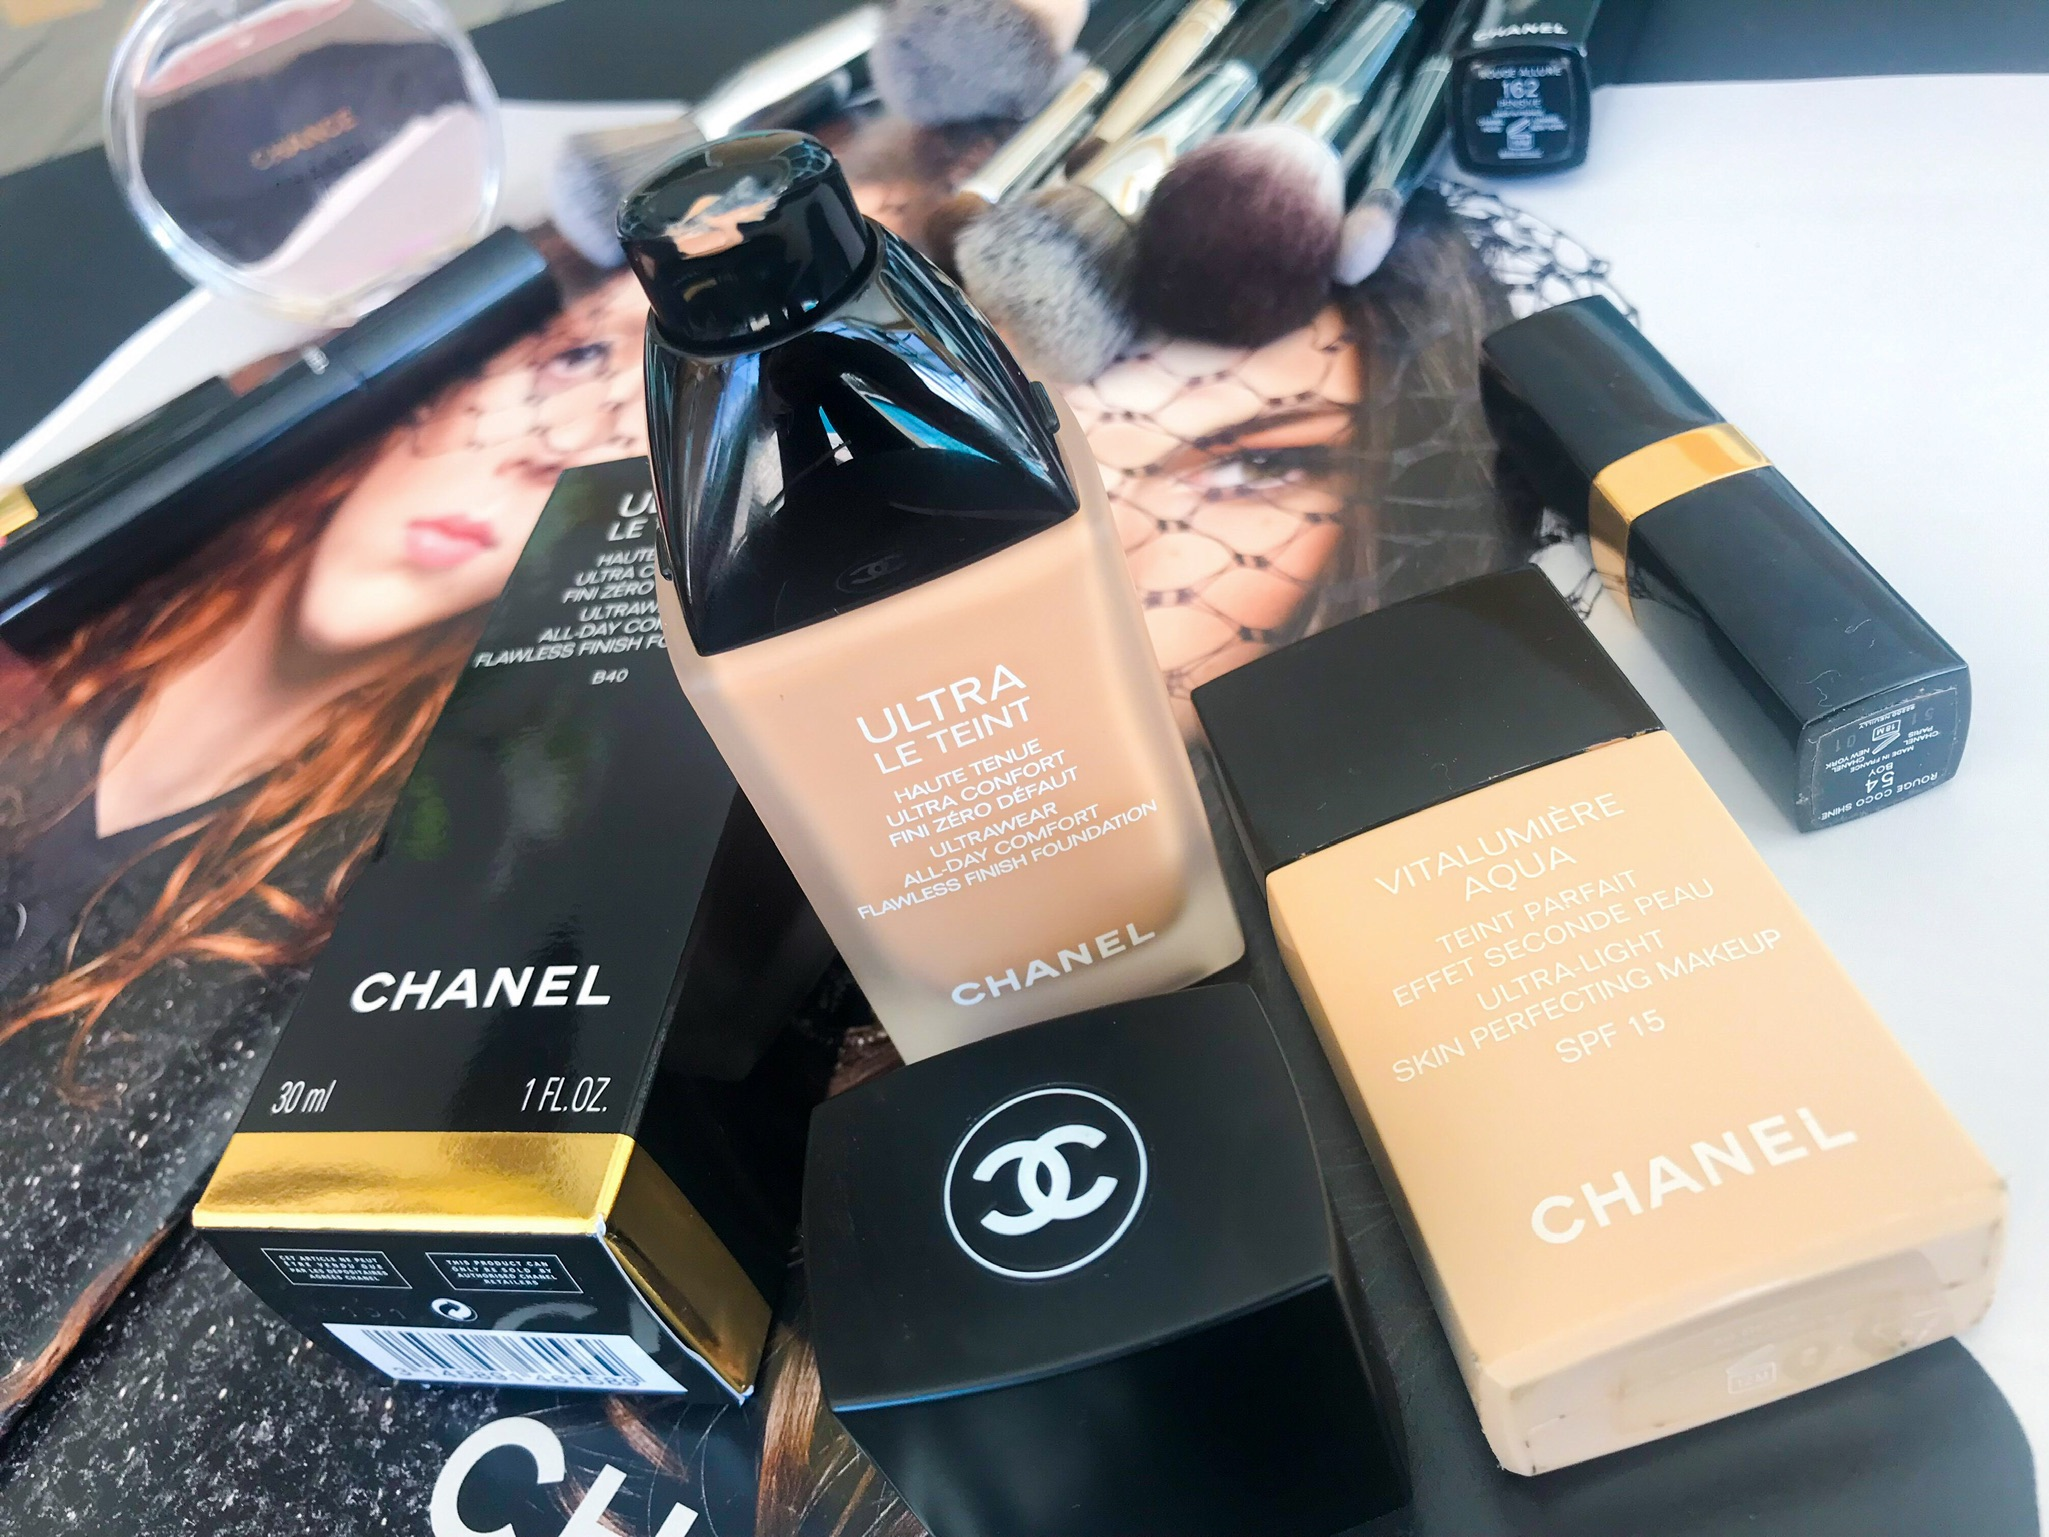 6a0d9a982c8 The NEW Chanel Ultra Le Teint All-Day Comfort Foundation